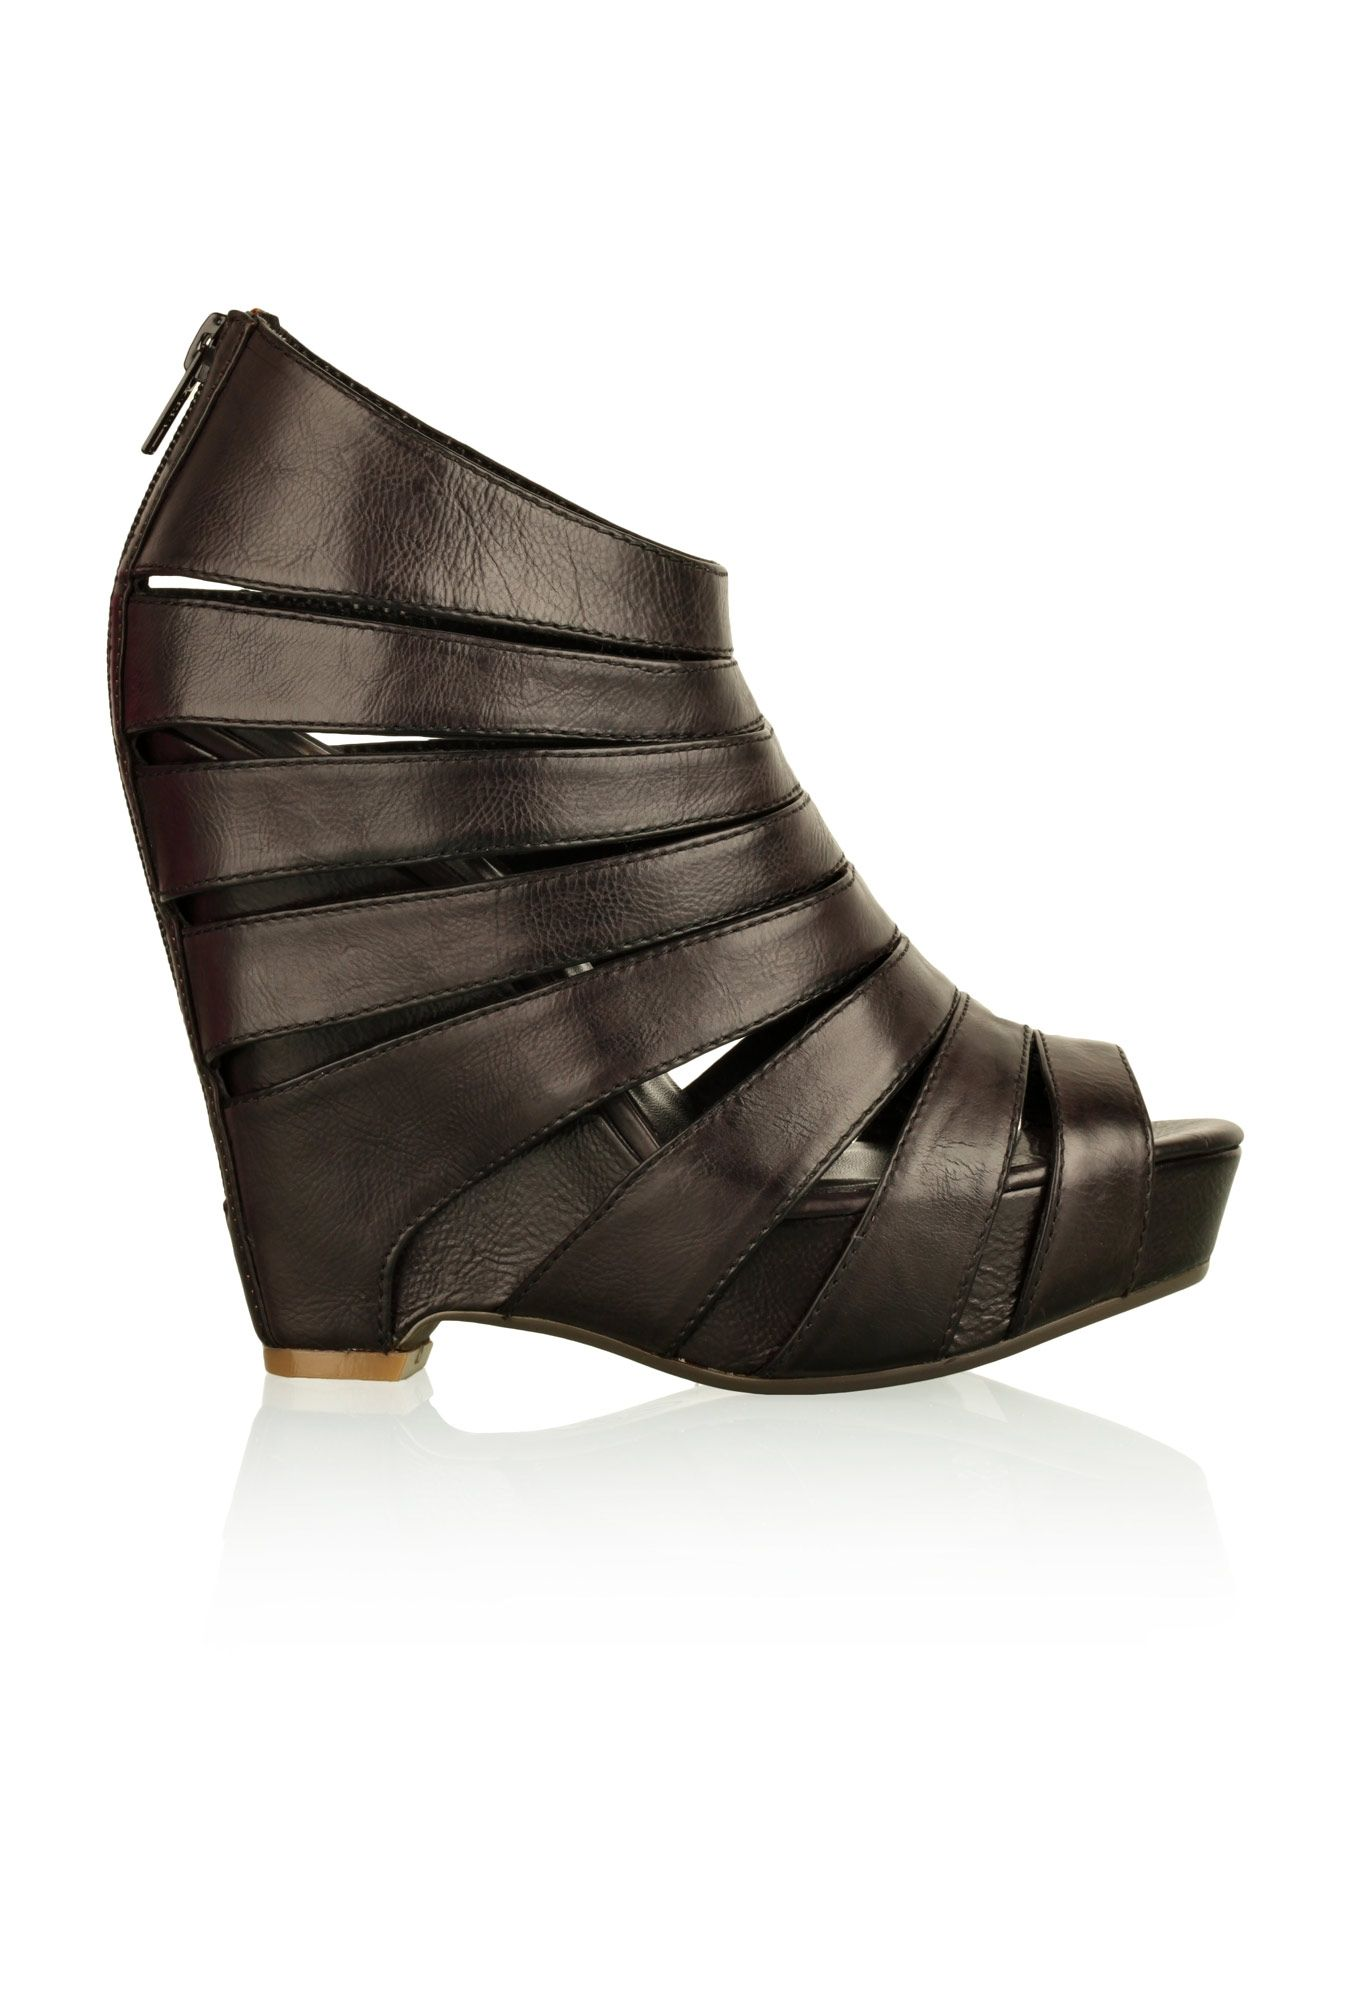 nine west caged shoes Caged Shoes